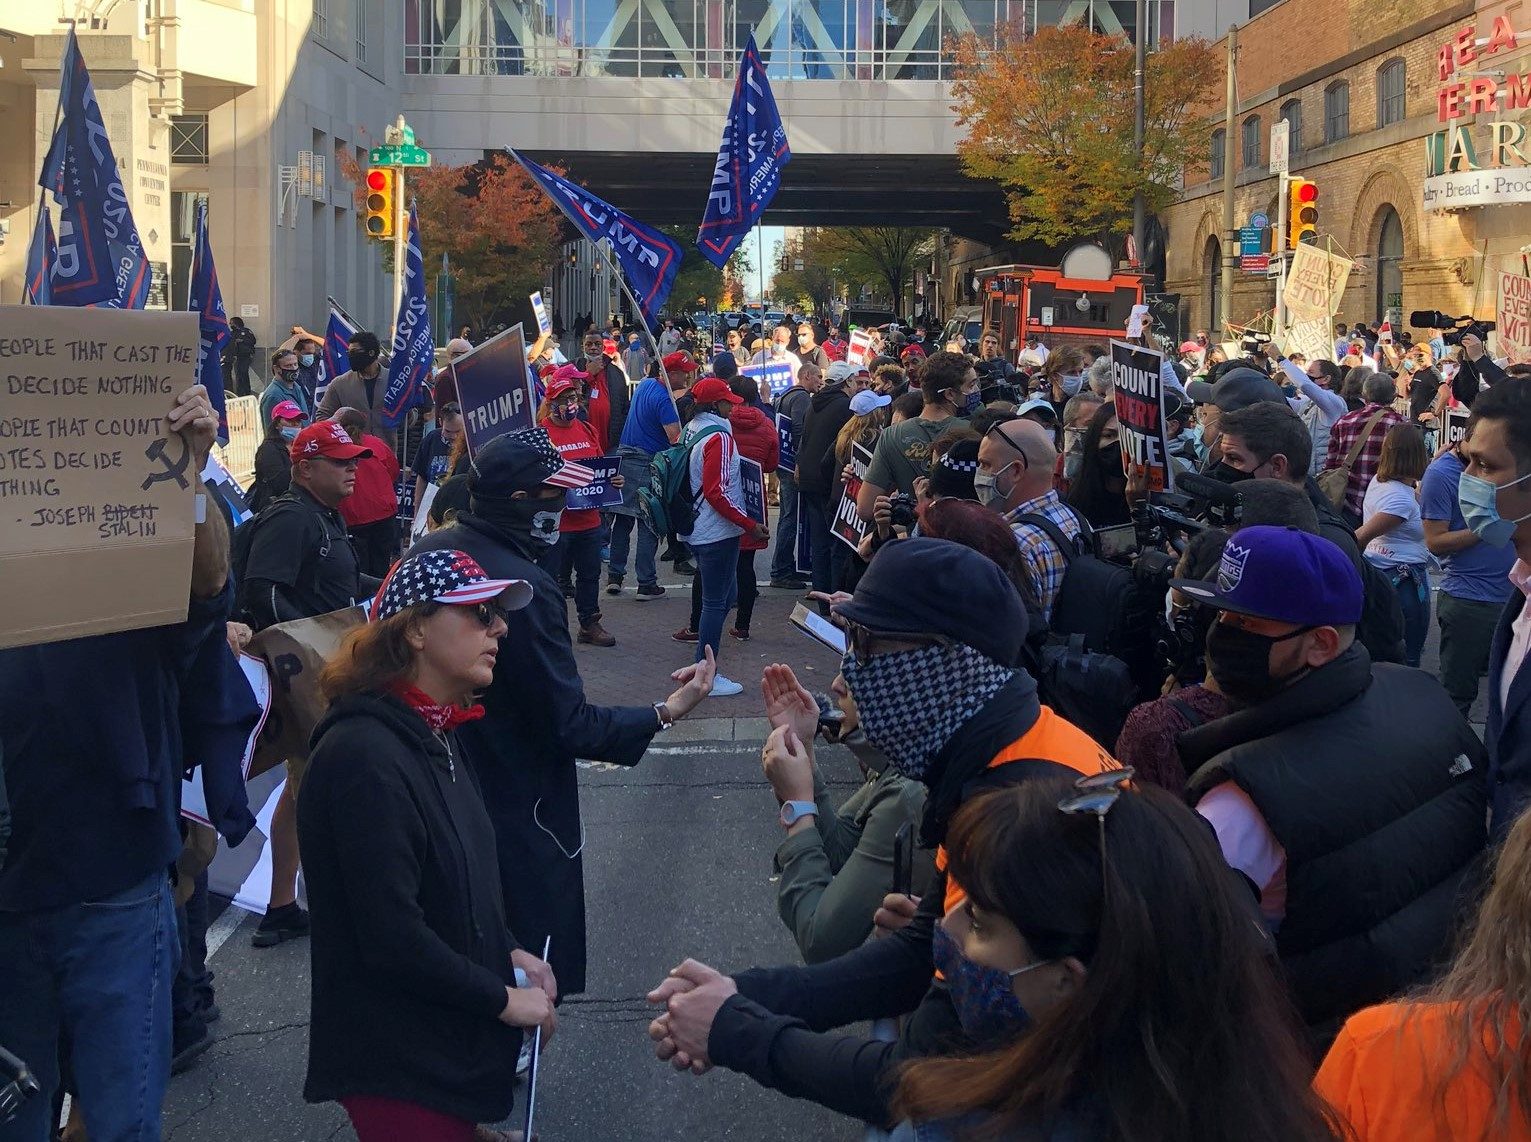 Counterprotests Take Place in Philadelphia at Pro-Trump Protest